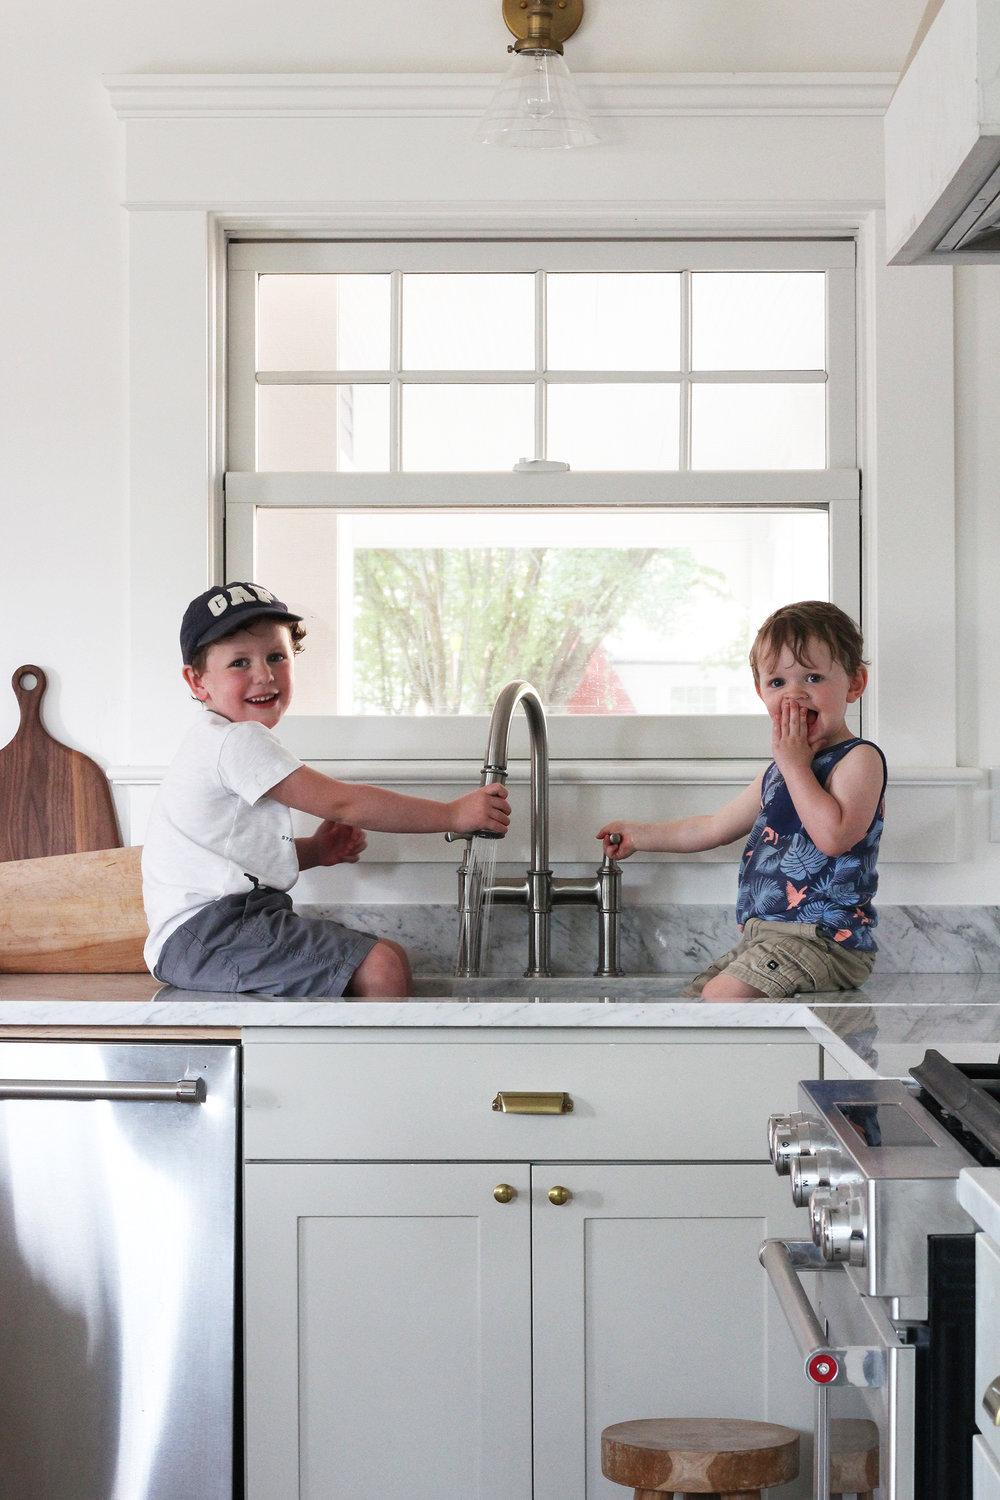 The Grit and Polish - Porch Kitchen Boys in Elkay Sink 1.2